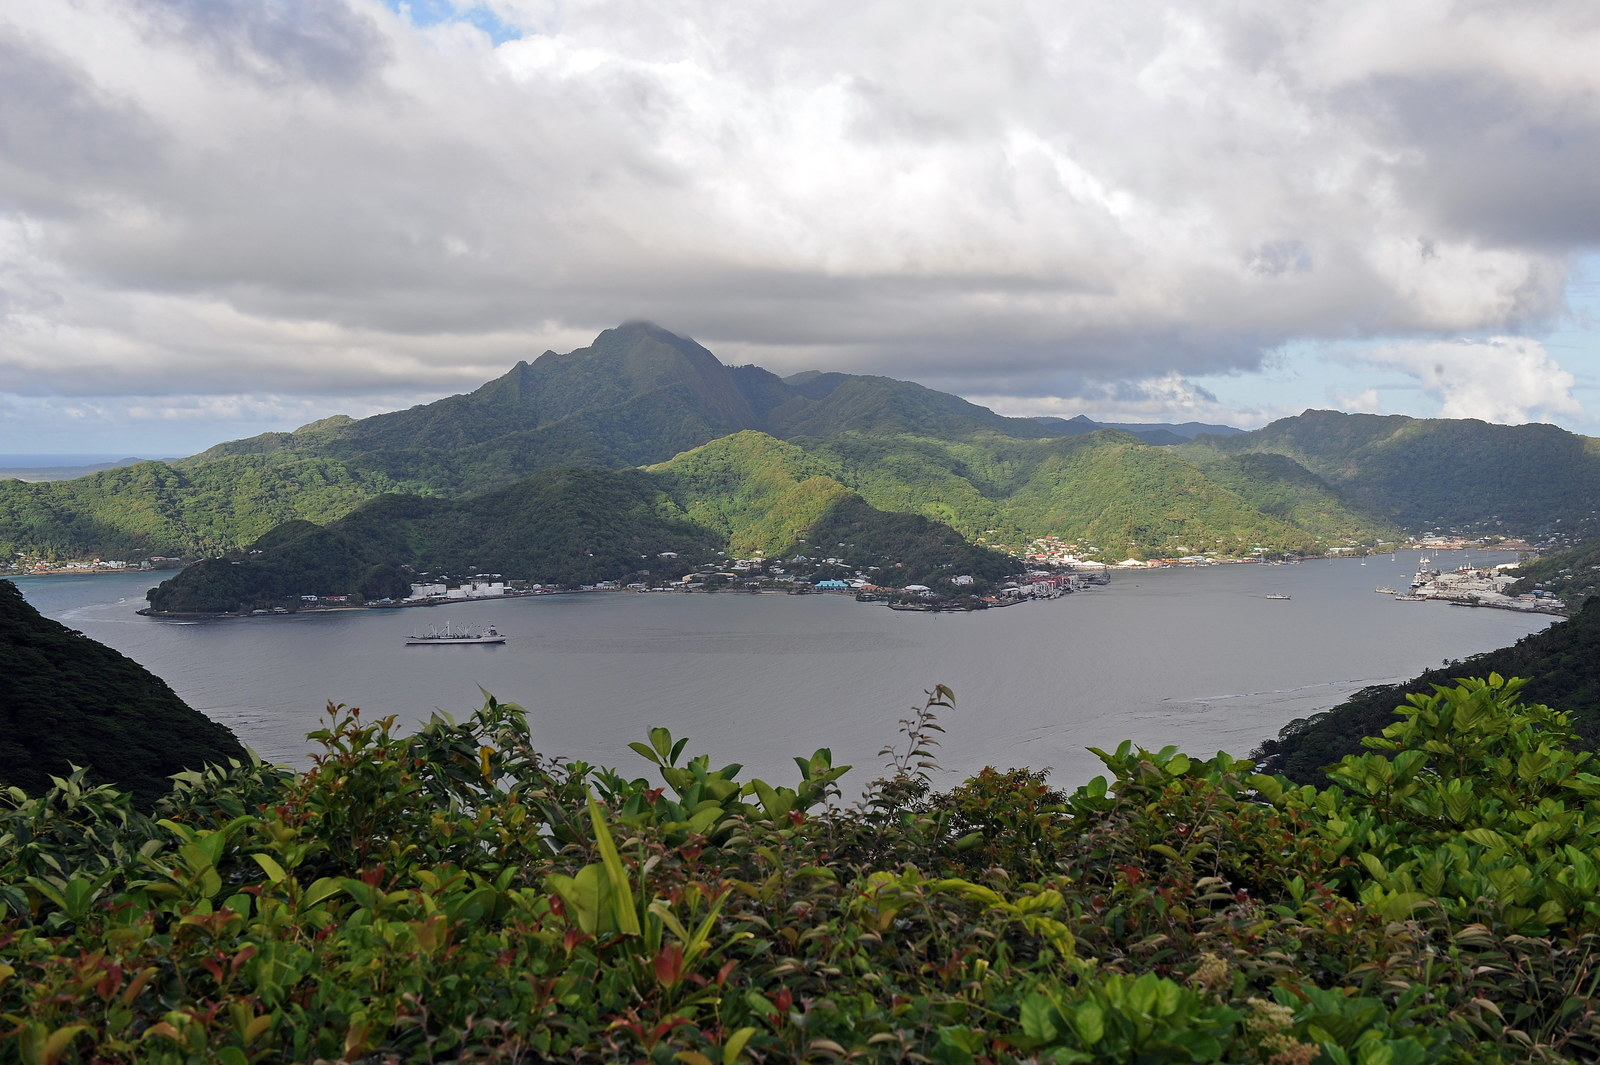 Matafao Peak above Pago Pago Harbor on Tutuila in American Samoa. on Oct. 3, 2009.